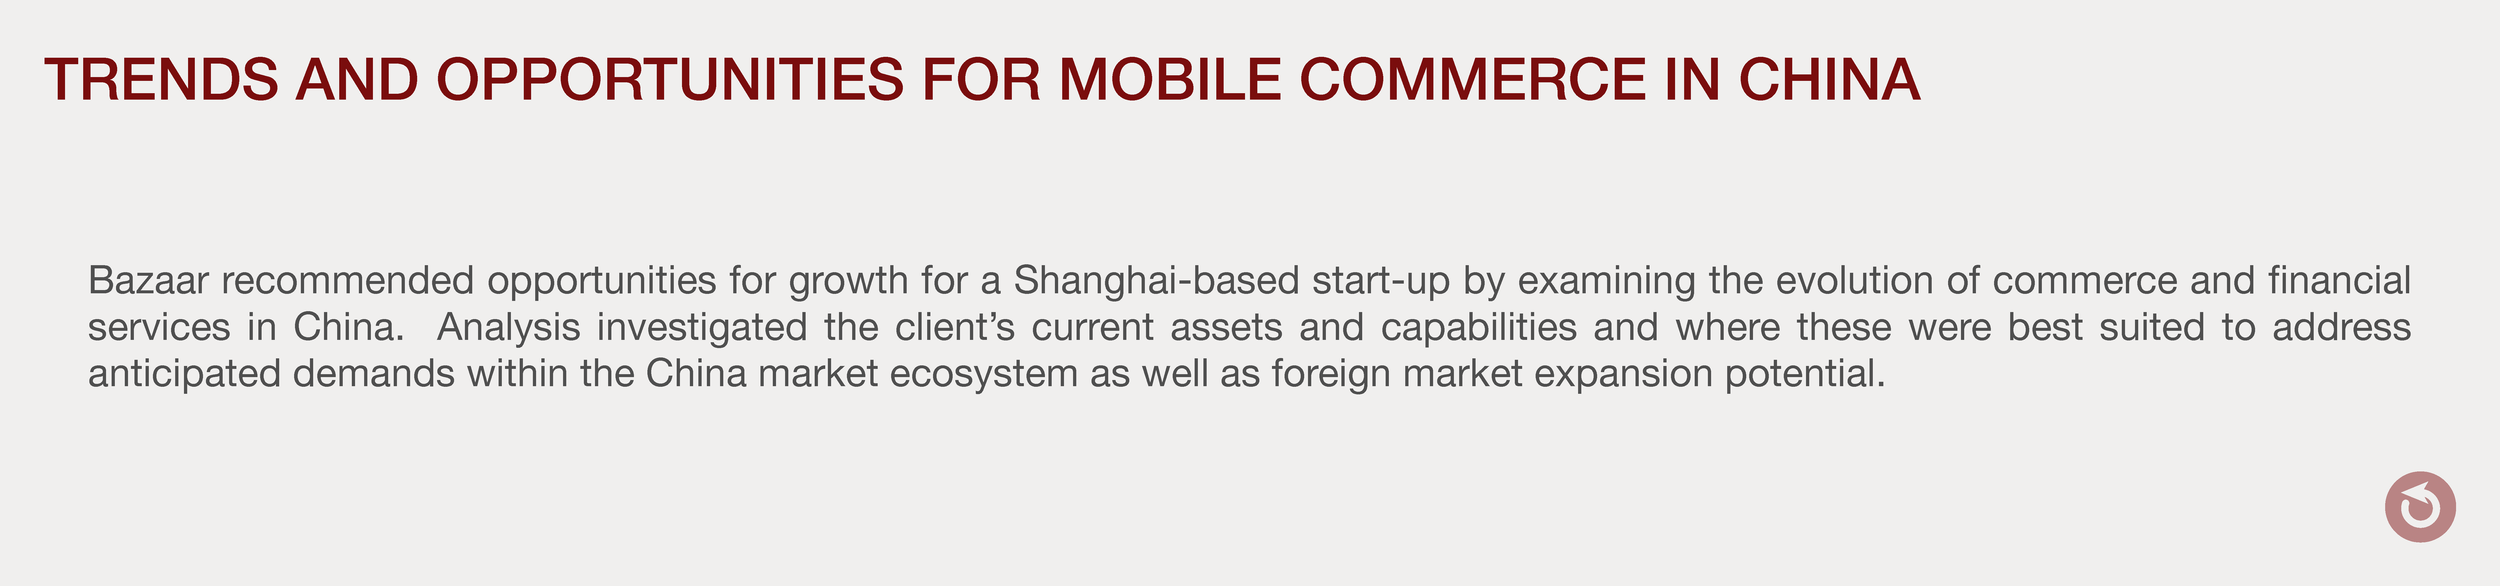 Mobile Commerce in China 2.png